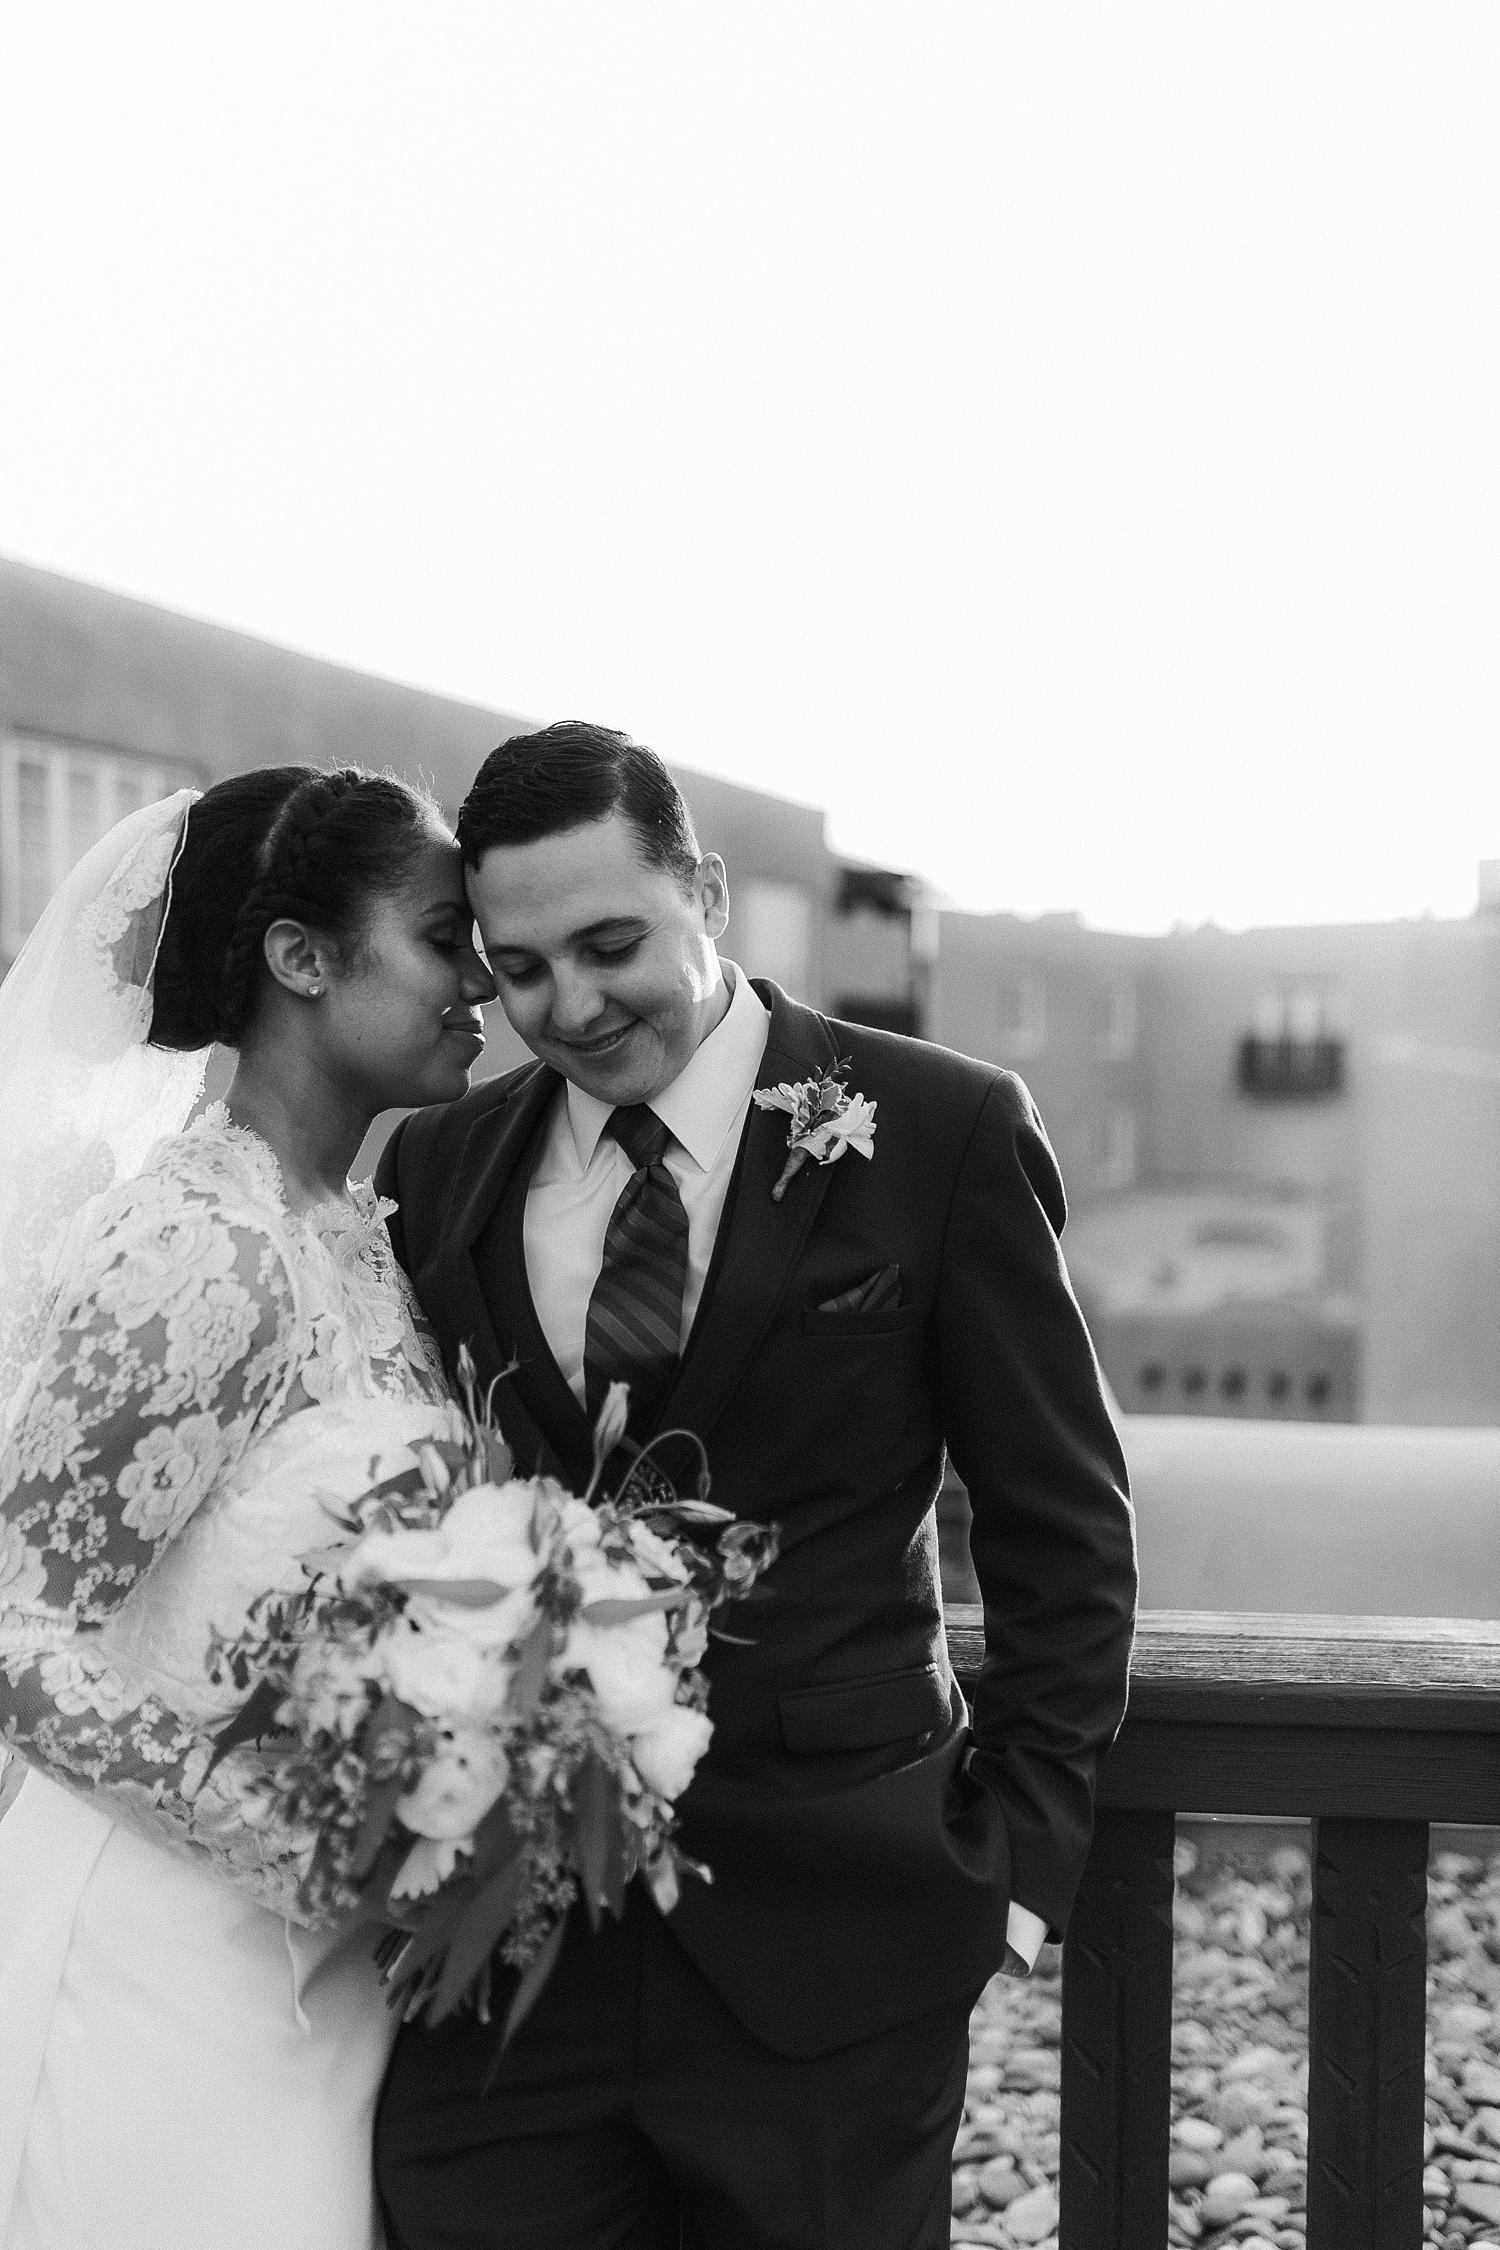 Alicia+lucia+photography+-+albuquerque+wedding+photographer+-+santa+fe+wedding+photography+-+new+mexico+wedding+photographer+-+new+mexico+engagement+-+la+fonda+new+mexico+wedding+-+la+fonda+fall+wedding_0066.jpg